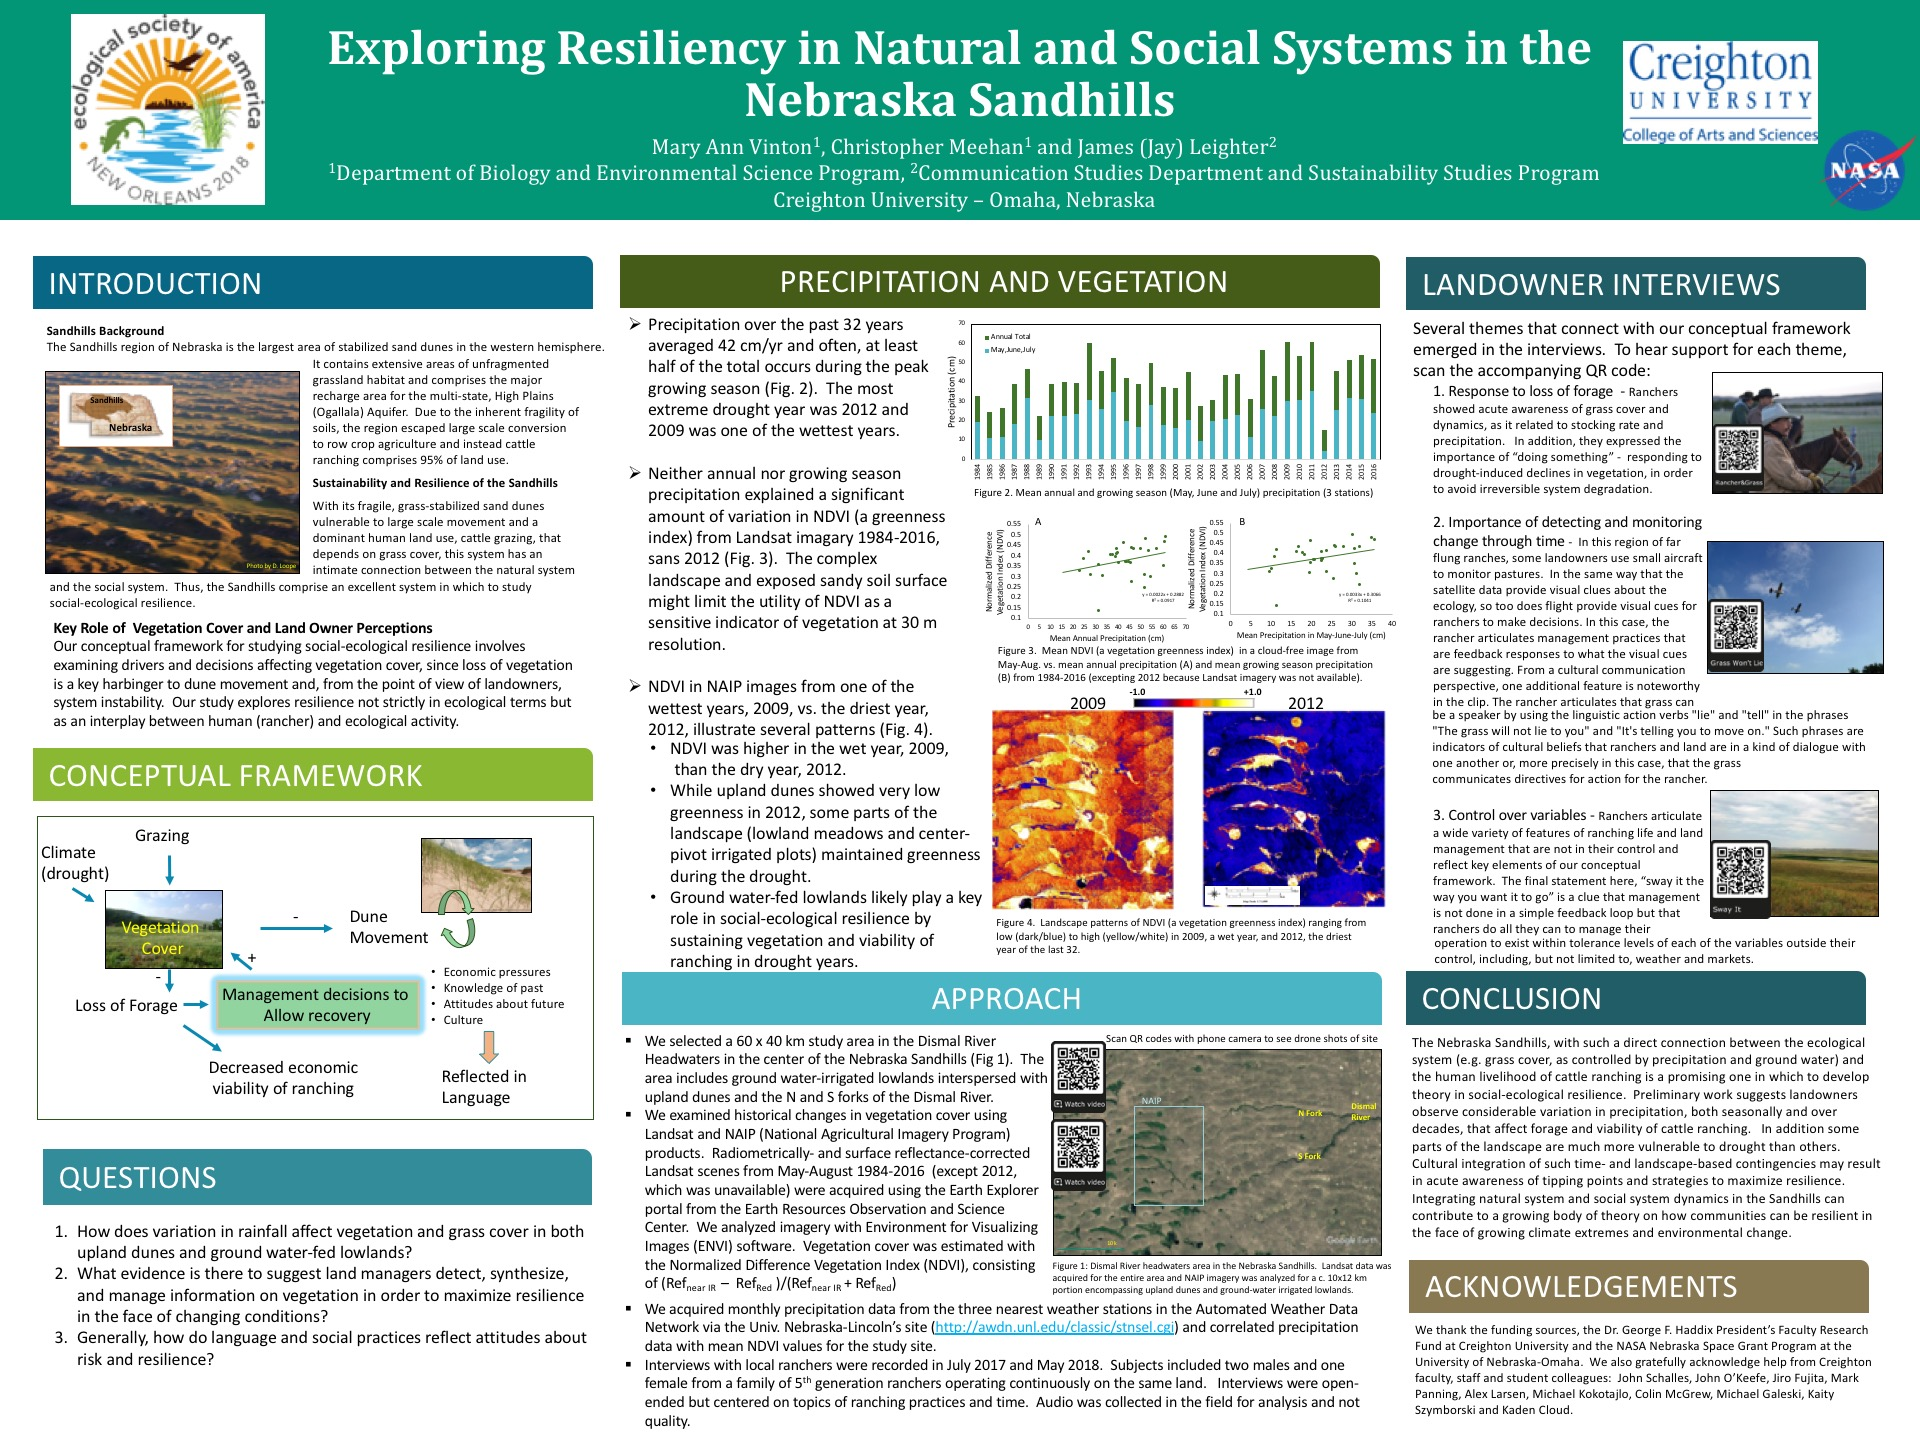 Ecological Society of America Presentation, 2018 - A preliminary report from pilot study on possible relationships in the socio-ecological (people and land) system of ranching in the Nebraska Sandhills.